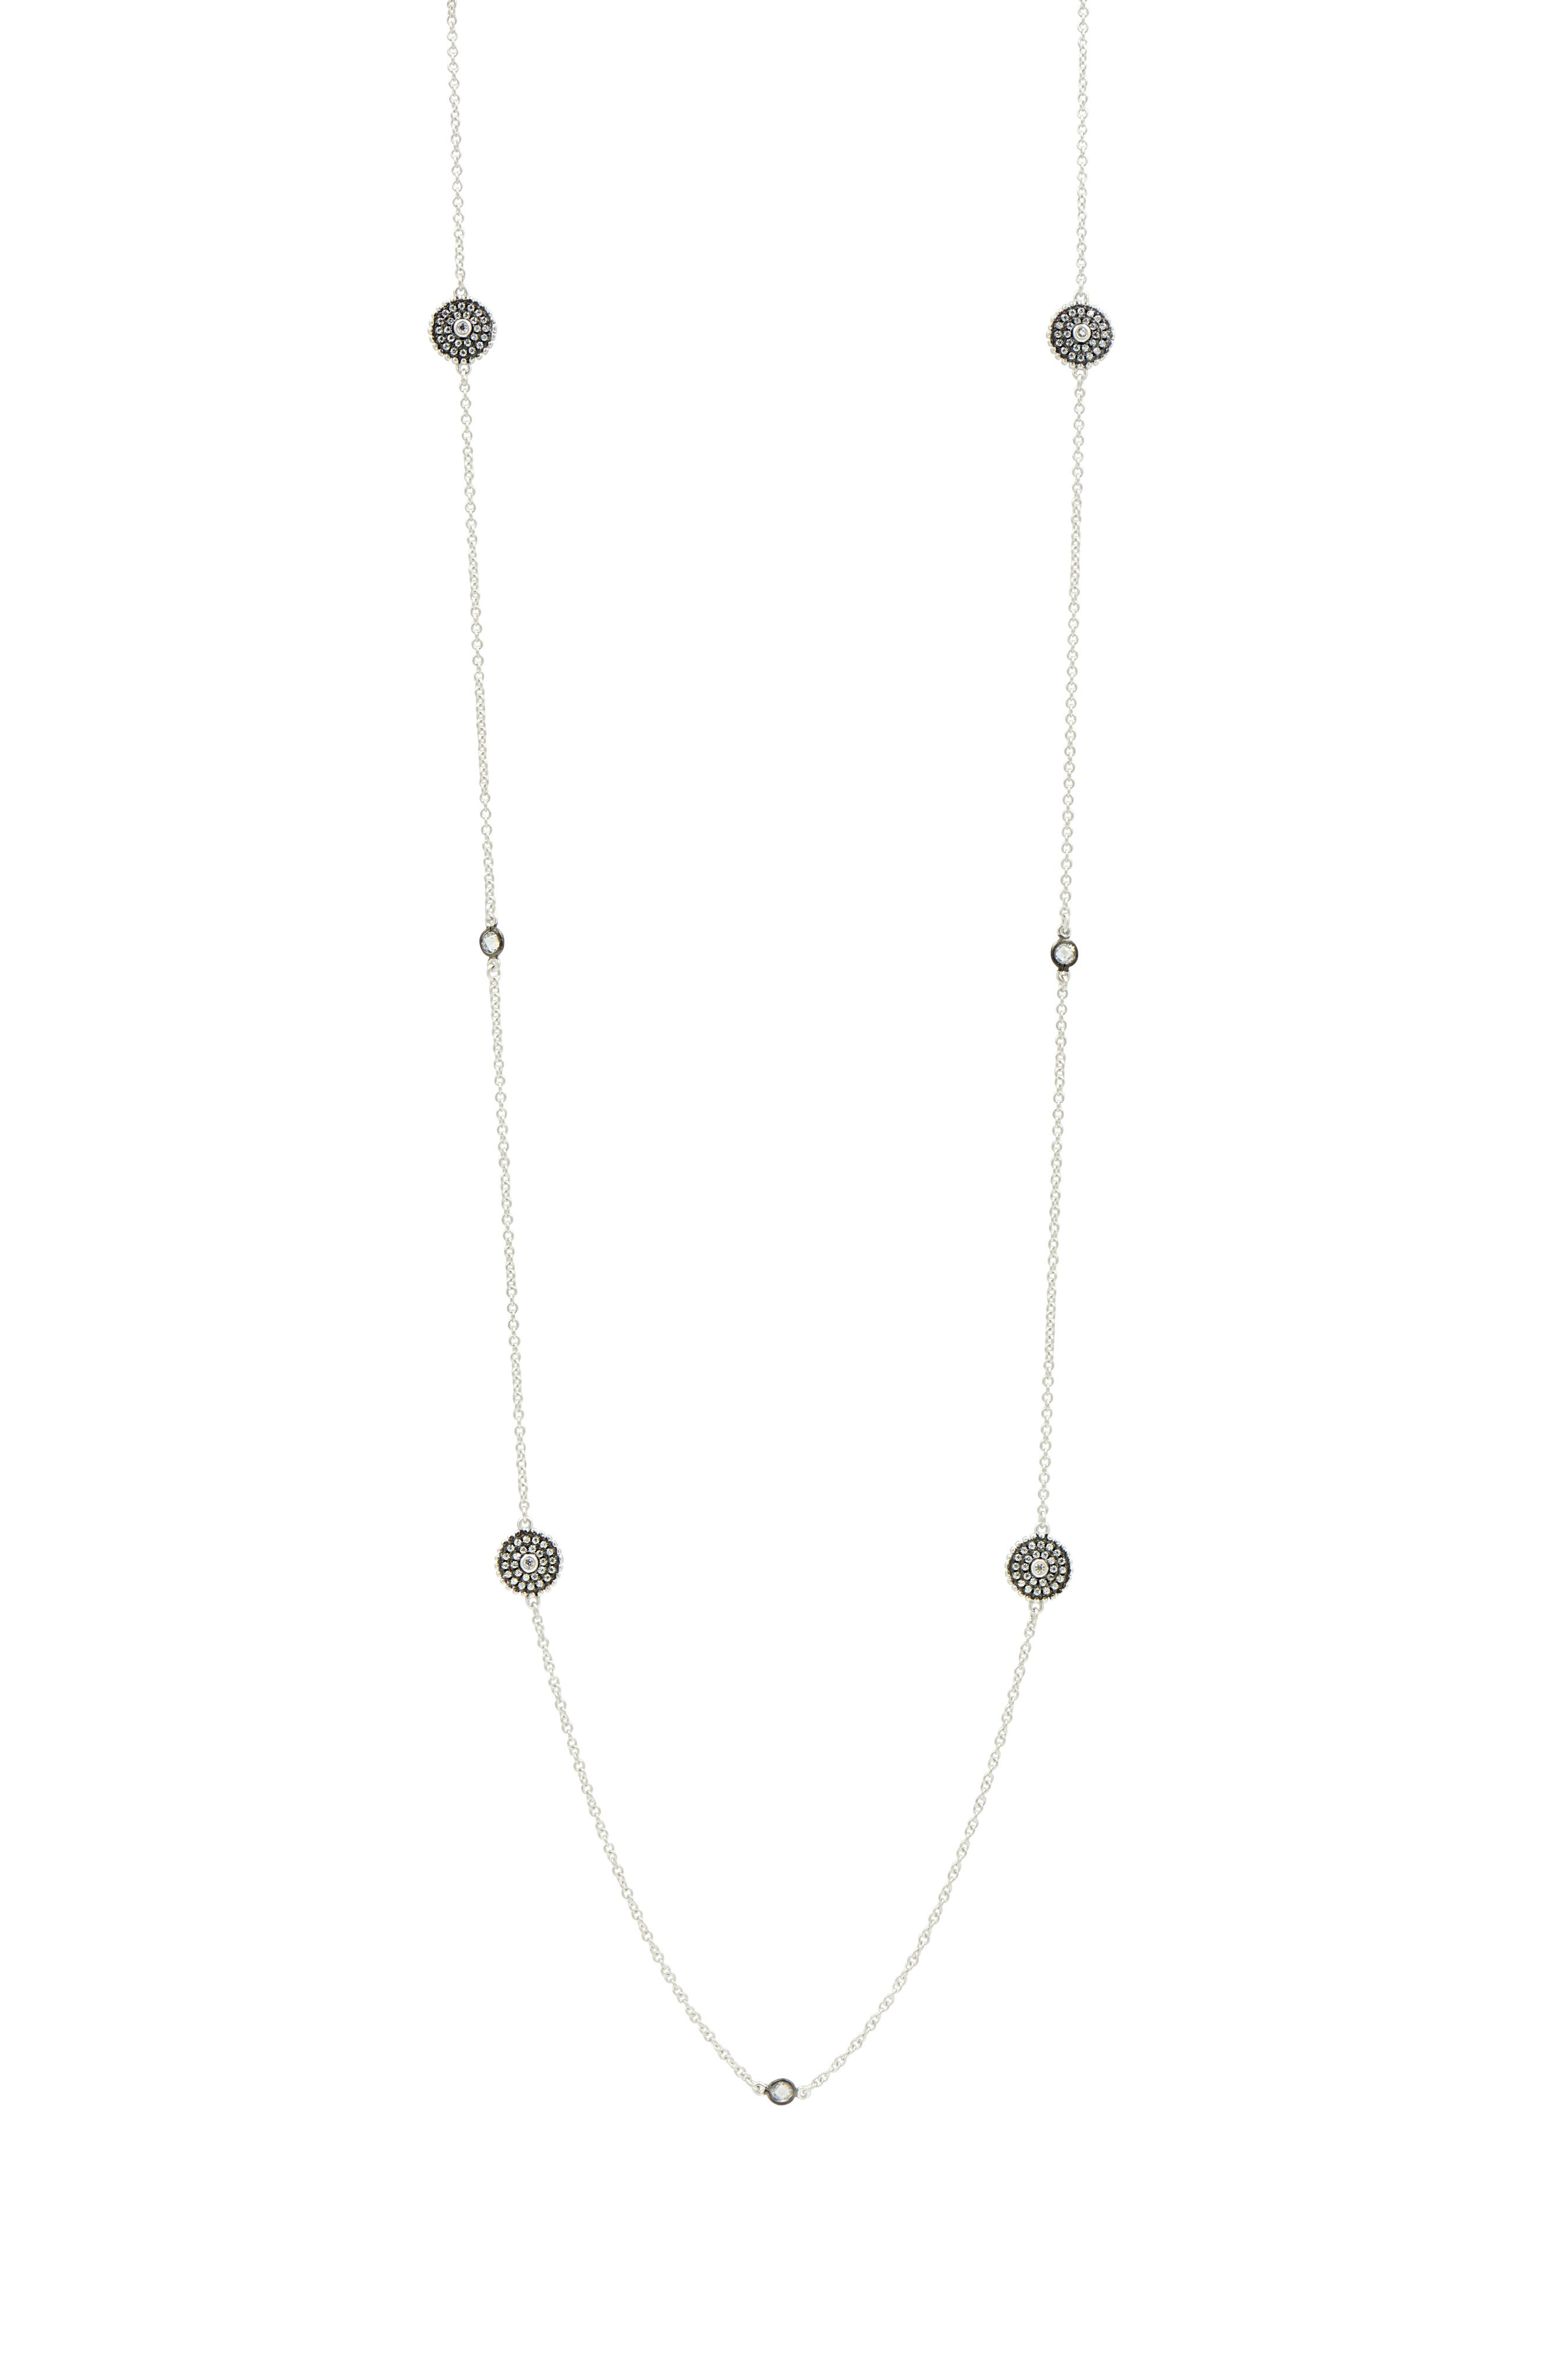 Double-Sided Pavé Disc Station Necklace,                             Alternate thumbnail 4, color,                             BLACK/ WHITE/ SILVER